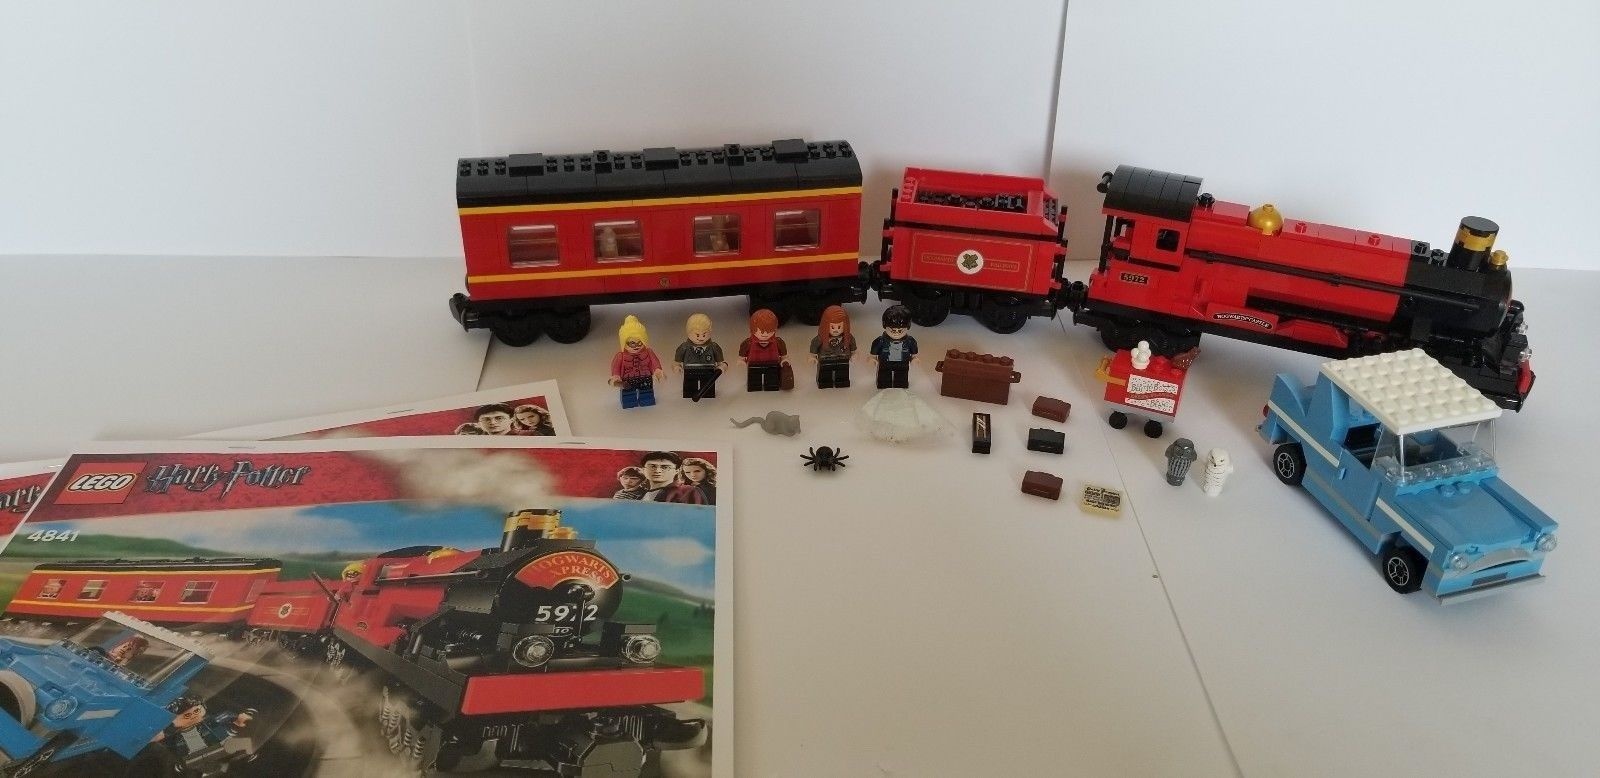 Harry Potter Hogwarts Express Lego 4841 Near Complete Box And